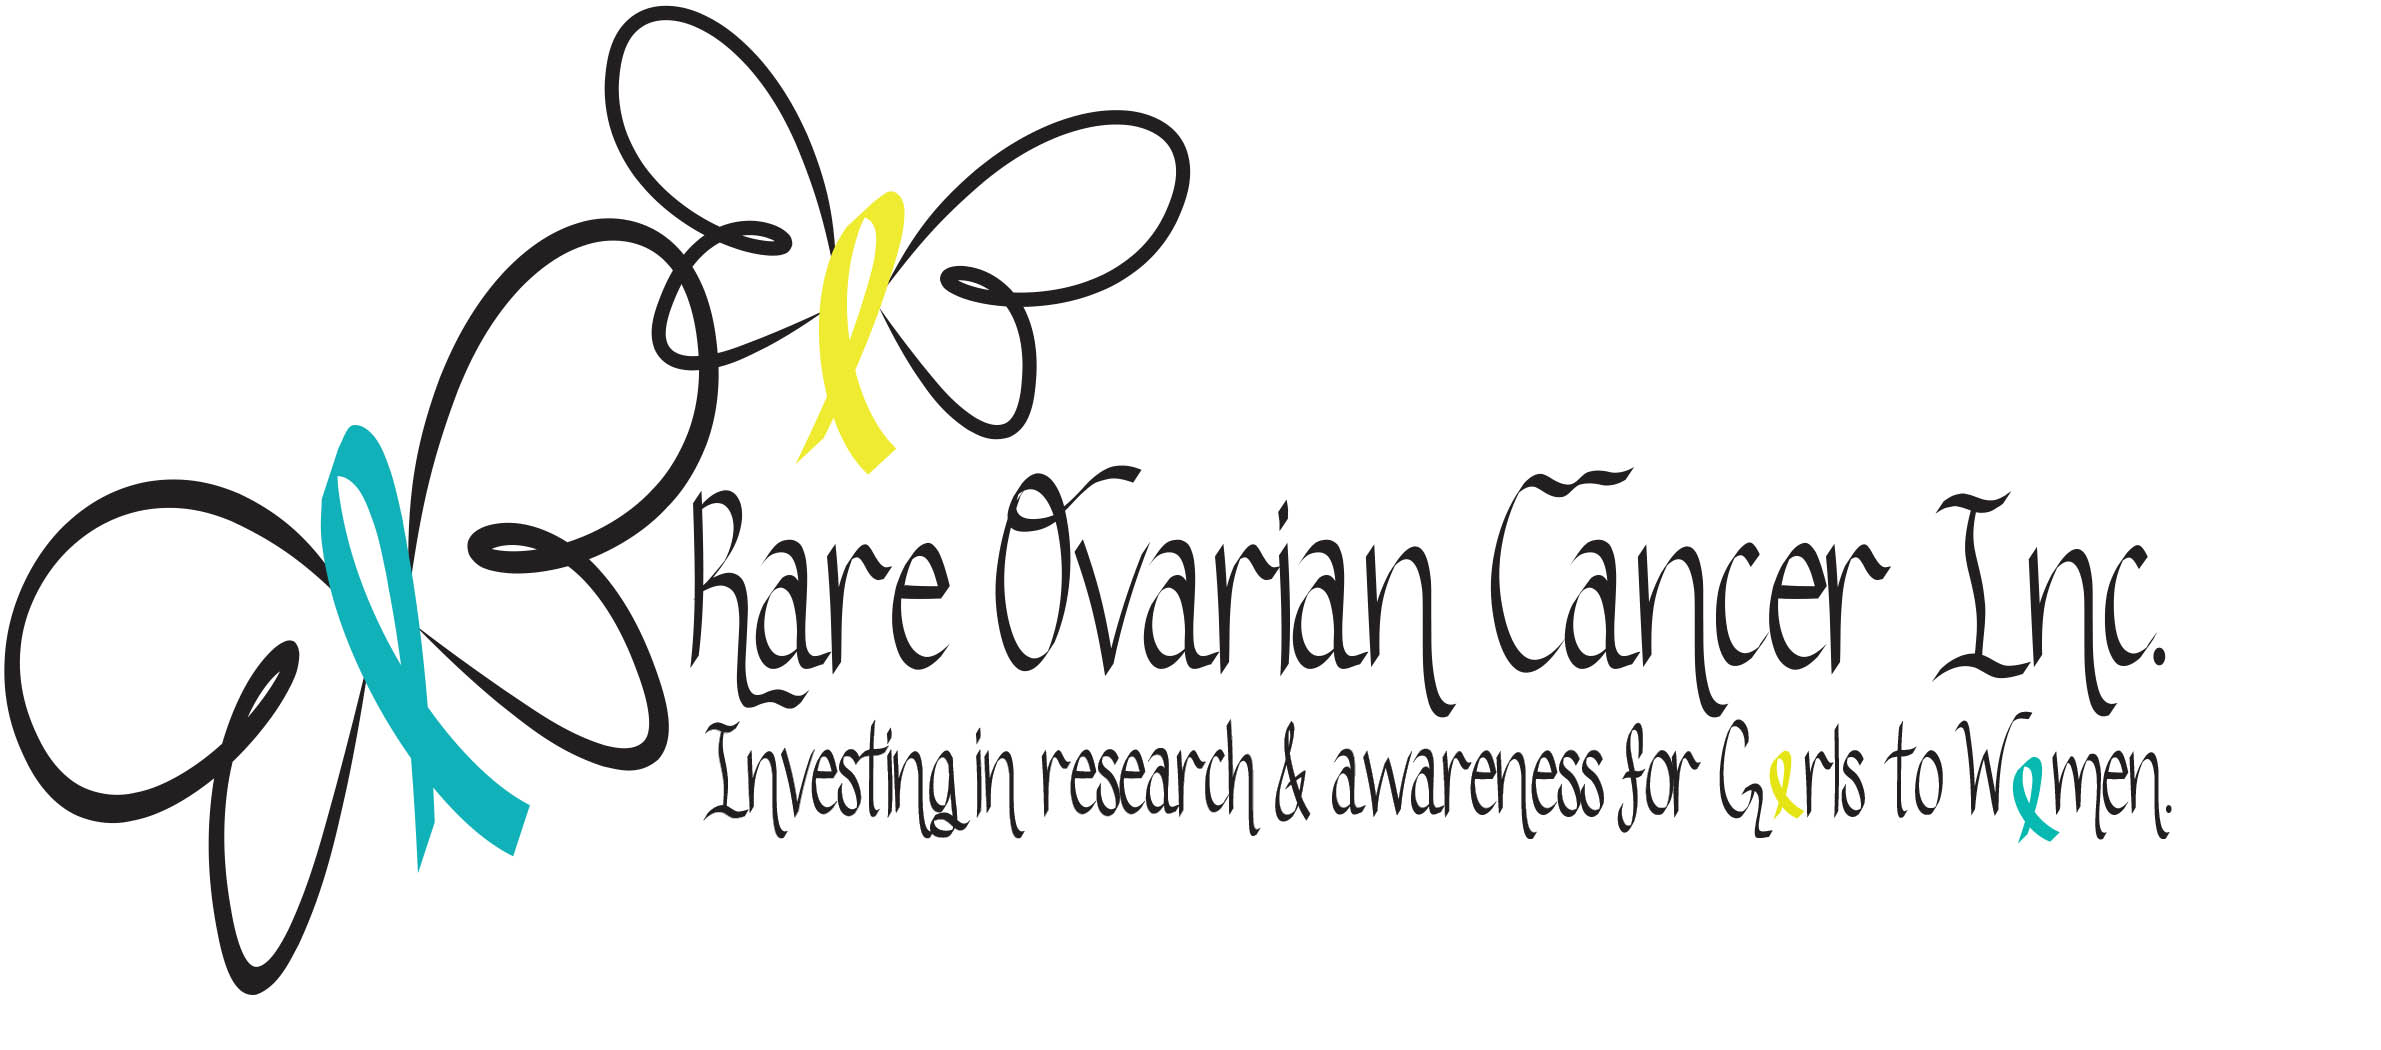 Rare Ovarian Cancer Incorporated